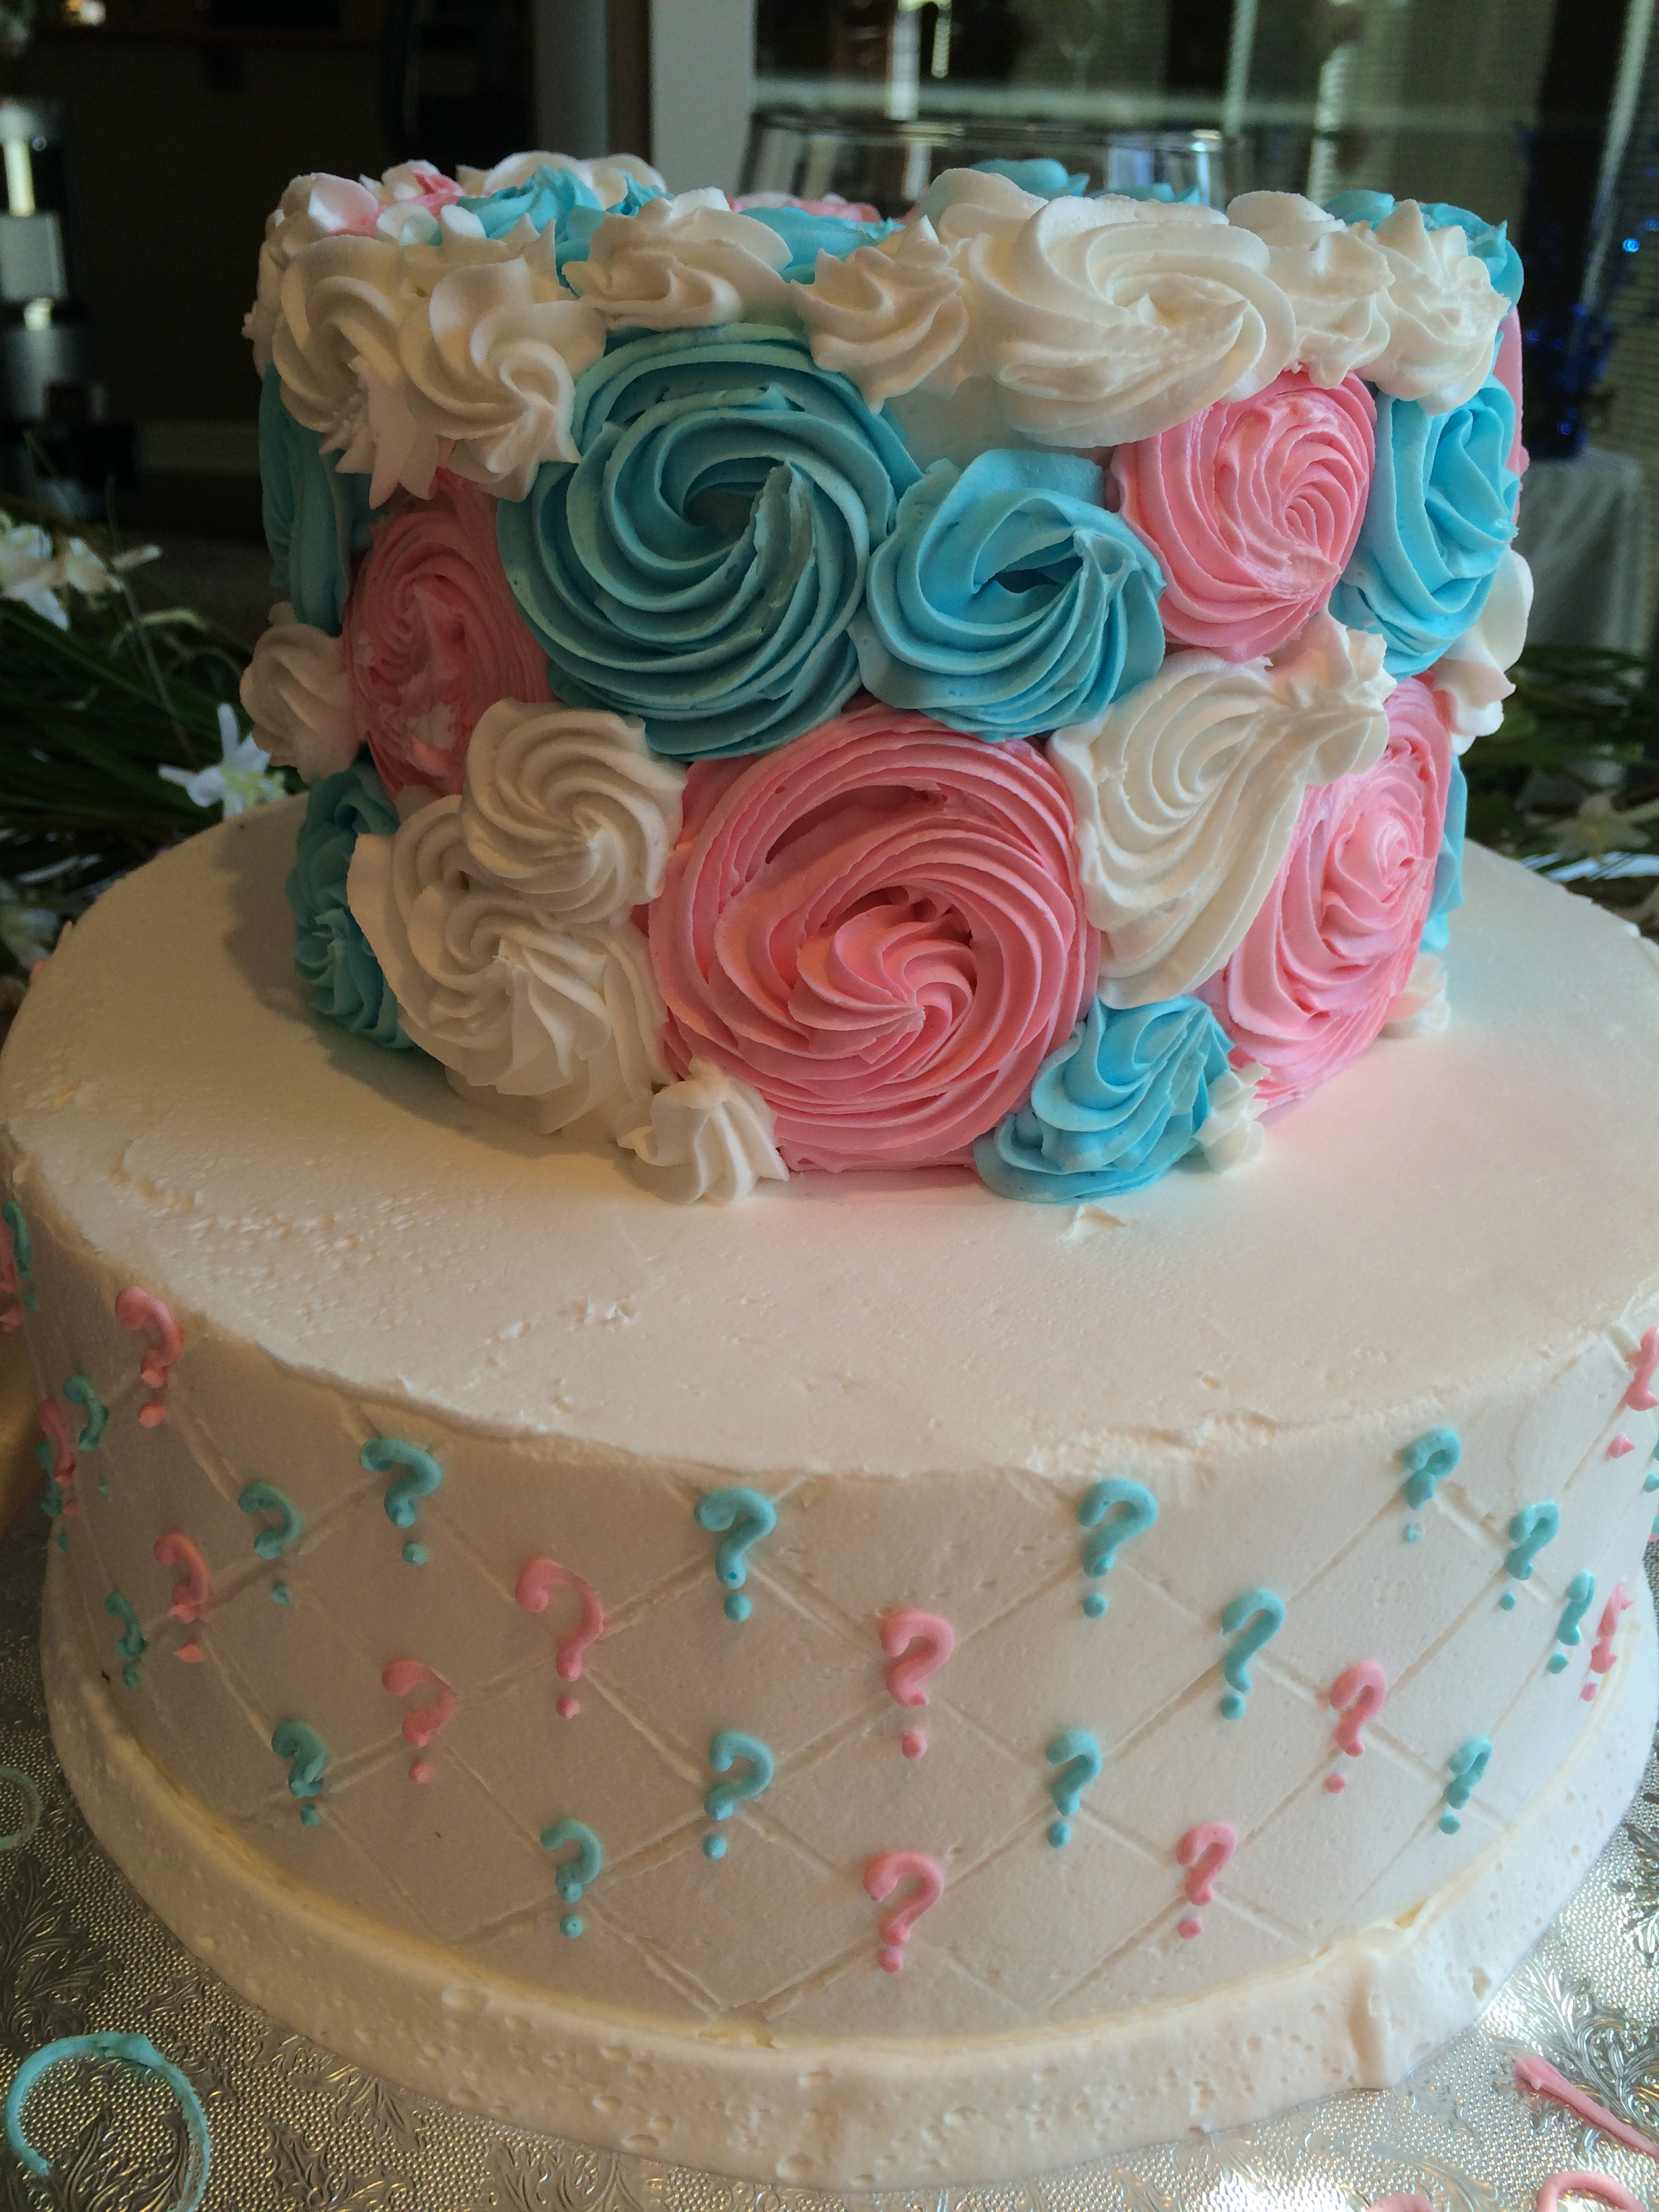 cake 5 - Gender Reveal Baby Shower